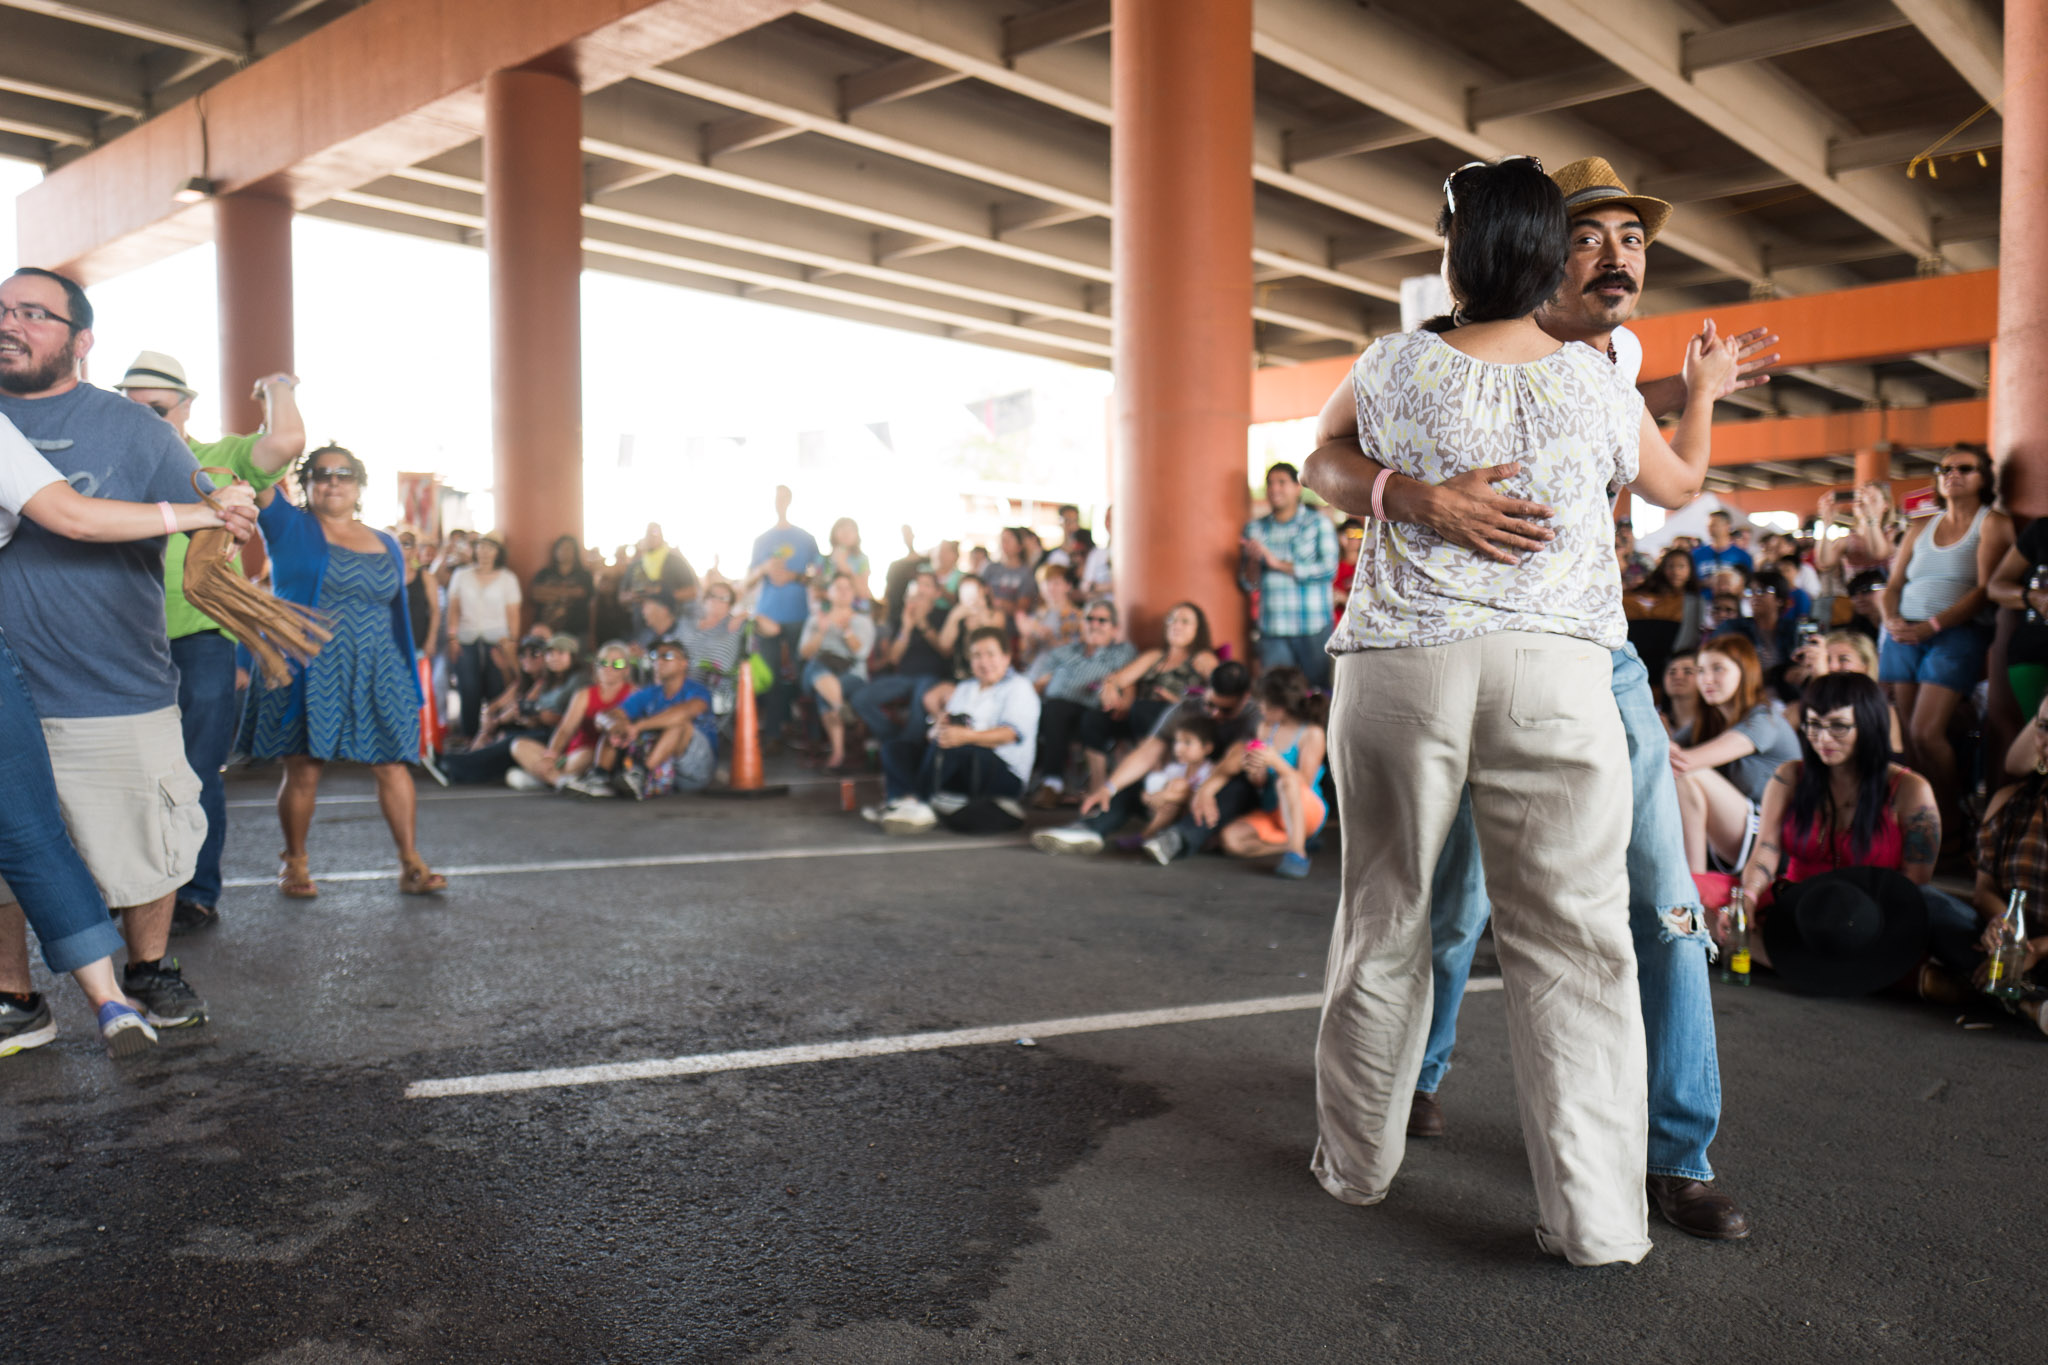 Local artist Nicolás Valdez is the first to take to the dance floor. Photo by Scott Ball.